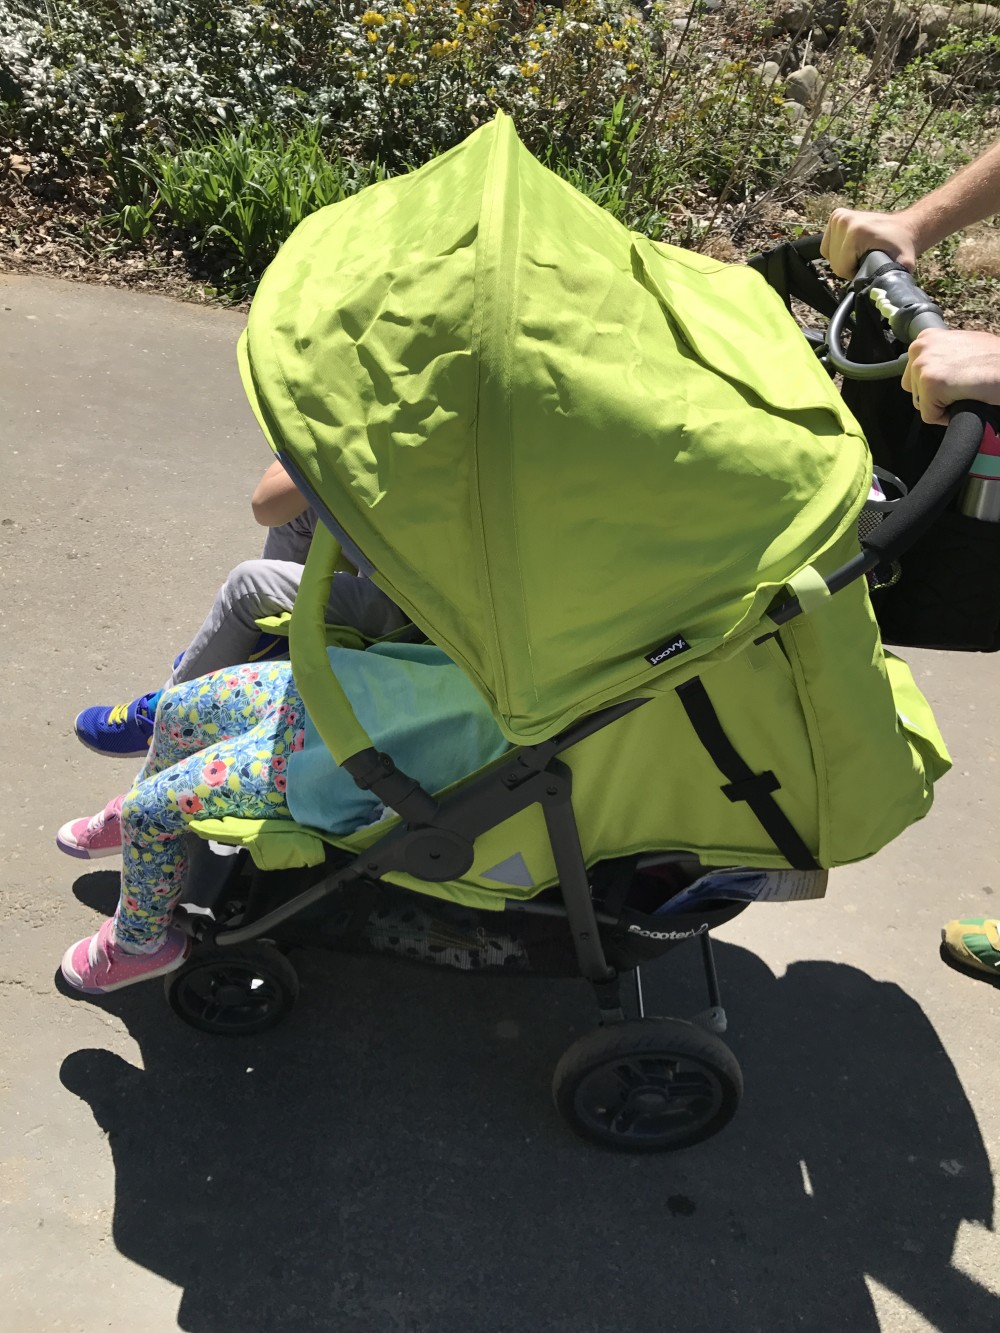 joovy double stroller side by side